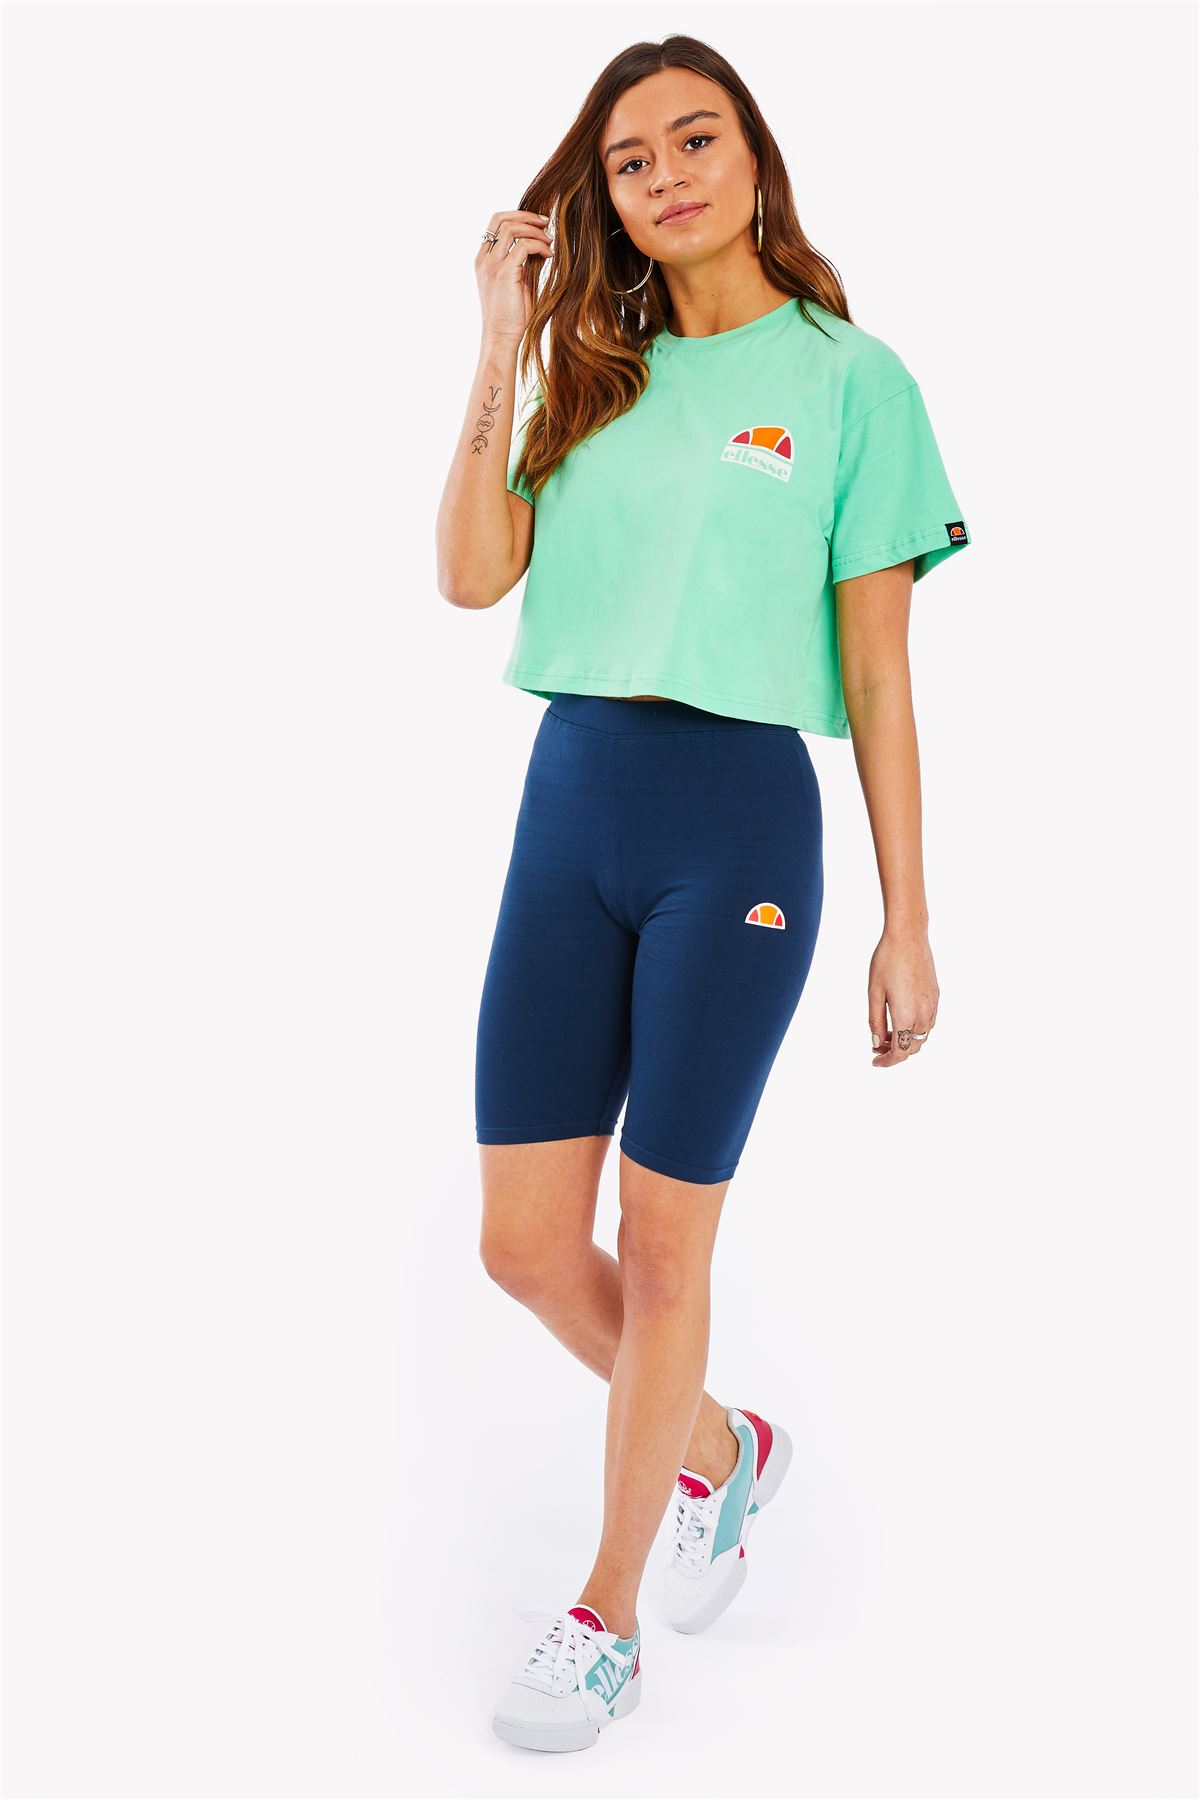 Ellesse-End-of-Line-Clearance-Sale-Bargain-Womens-Tops-T-Shirts-Free-UK-Ship thumbnail 35